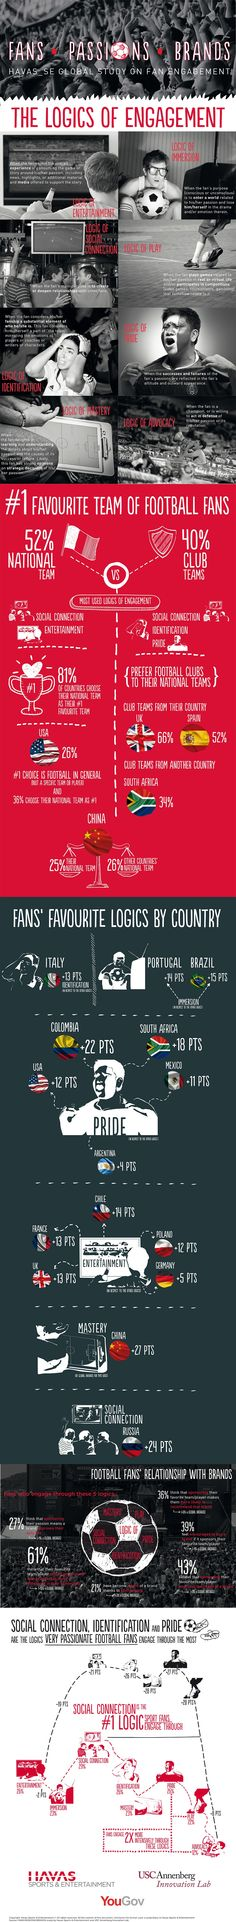 Fans Research from Havas :: Fans, Passions, Brands Not bad. The weakest point is the time of the research: during the World Cup, and all fans are enthusiastic about football